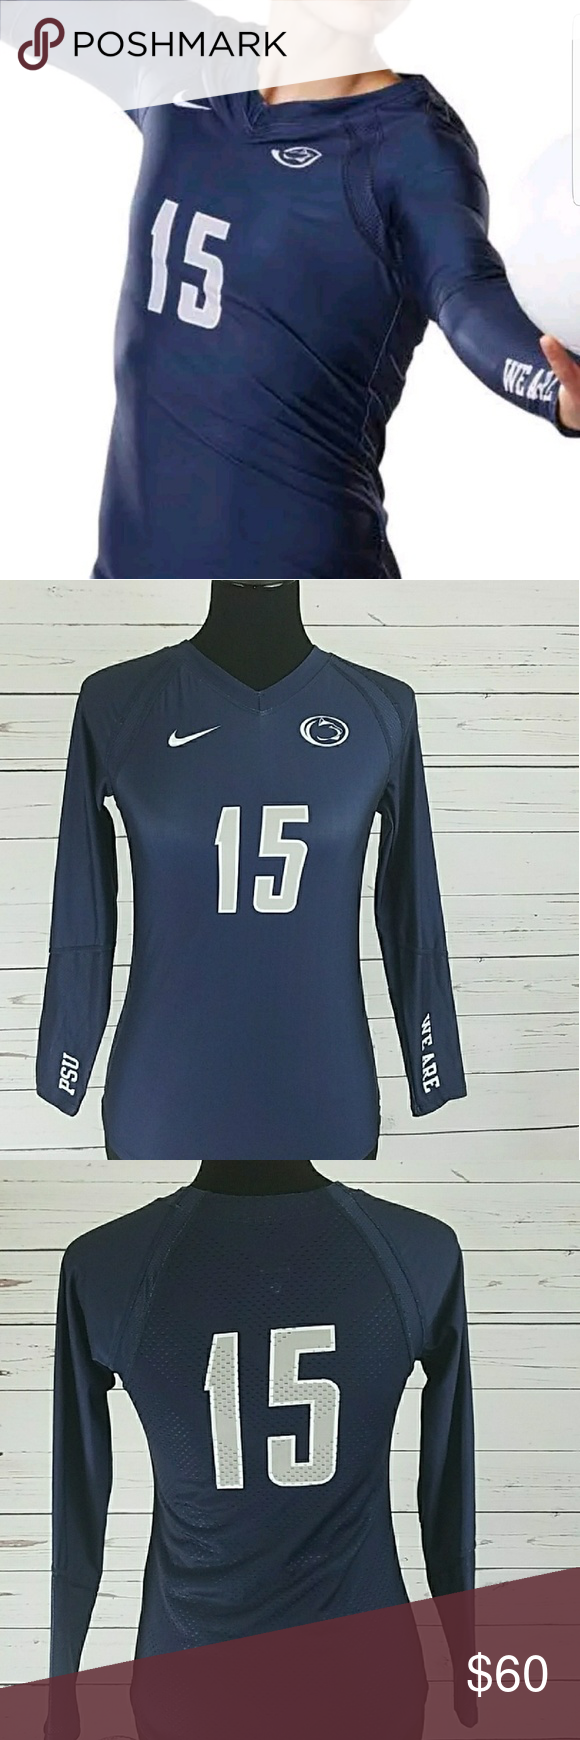 Penn State Nittany Lions Volleyball Jersey Med Clothes Design Fashion Design Fashion